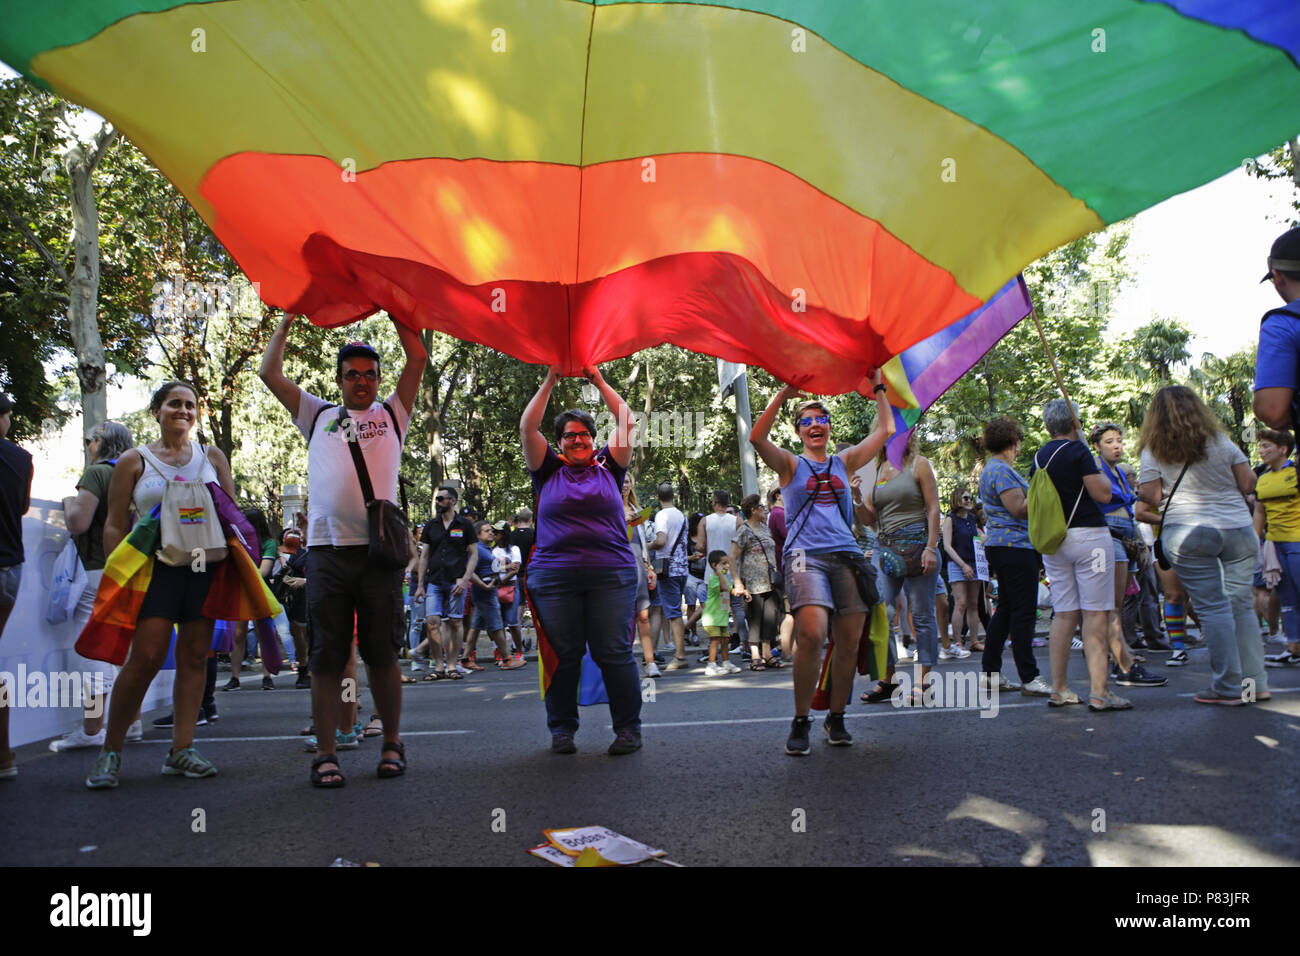 July 7, 2018 - Madrid, Spain - Multicolor flag, symbol of the LGTBI seen being carried by a group of peopla during the 2018 Pride Parade..Thousands of people has been filling the streets and avenues of Madrid on a sunny day for the 2018 gay pride parade after still struggling for gay rights around the world. (Credit Image: © Mario Roldan/SOPA Images via ZUMA Wire) - Stock Image